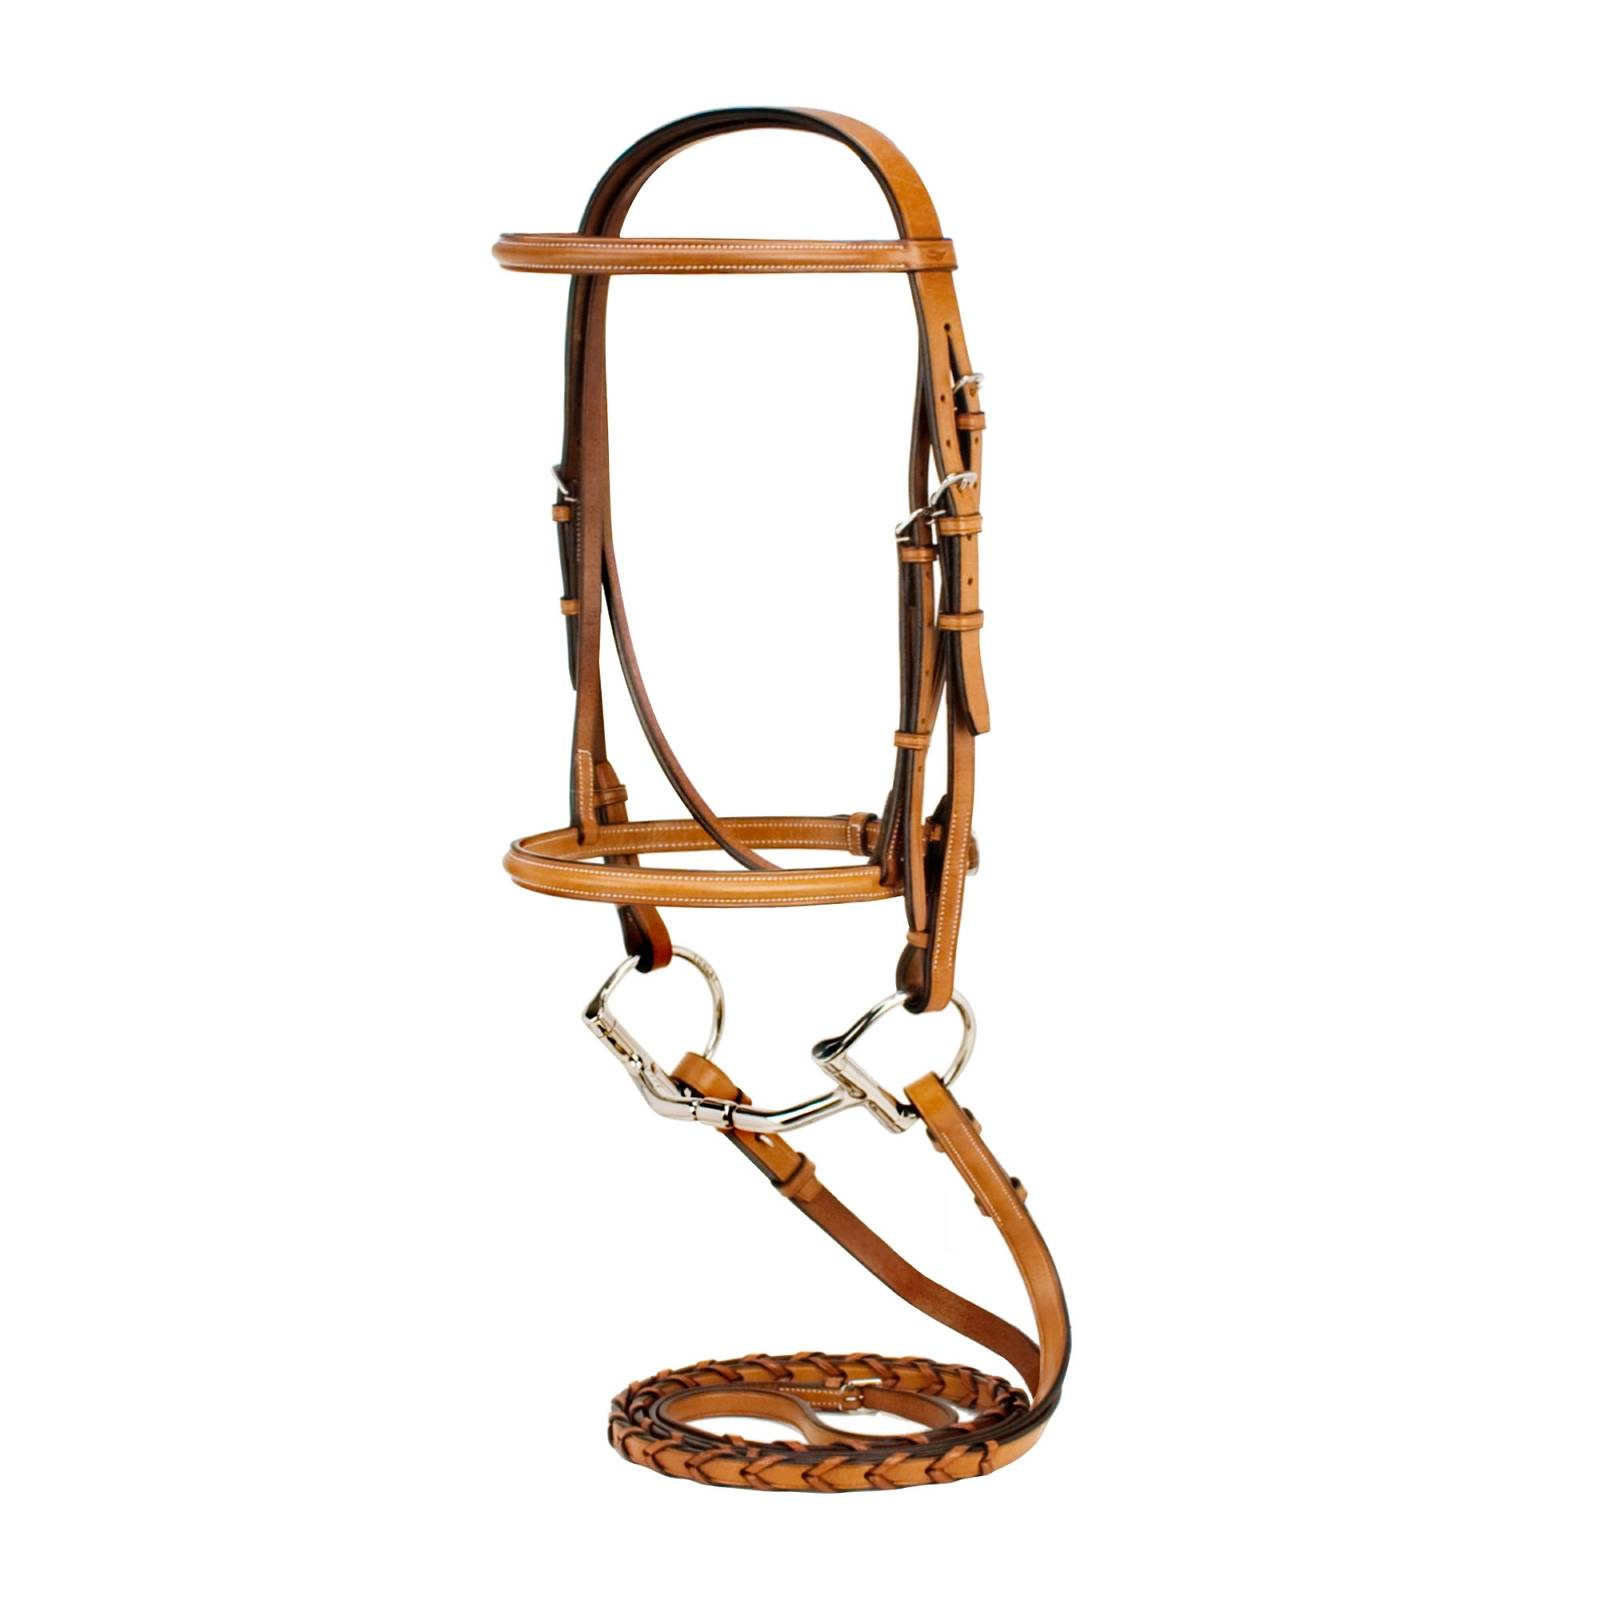 Silverleaf Plain Raised Bridle with Reins